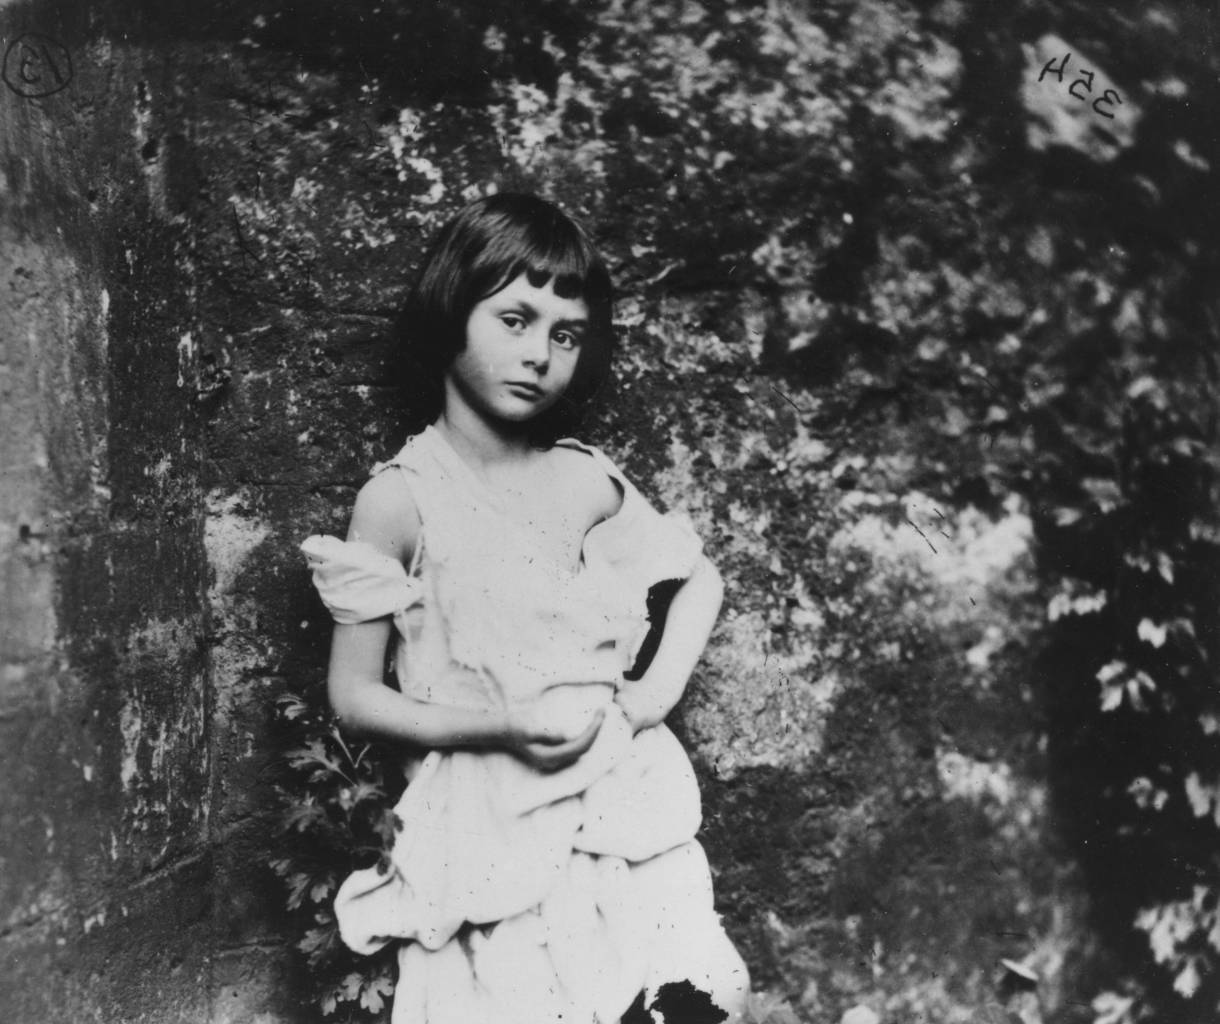 1858: Alice Liddell (1852 - 1934), the inspiration for Lewis Carroll's fictional character Alice in 'Alice in Wonderland'. She is posing as 'The Beggar-Maid.' (Photo by Lewis Carroll/Getty Images)